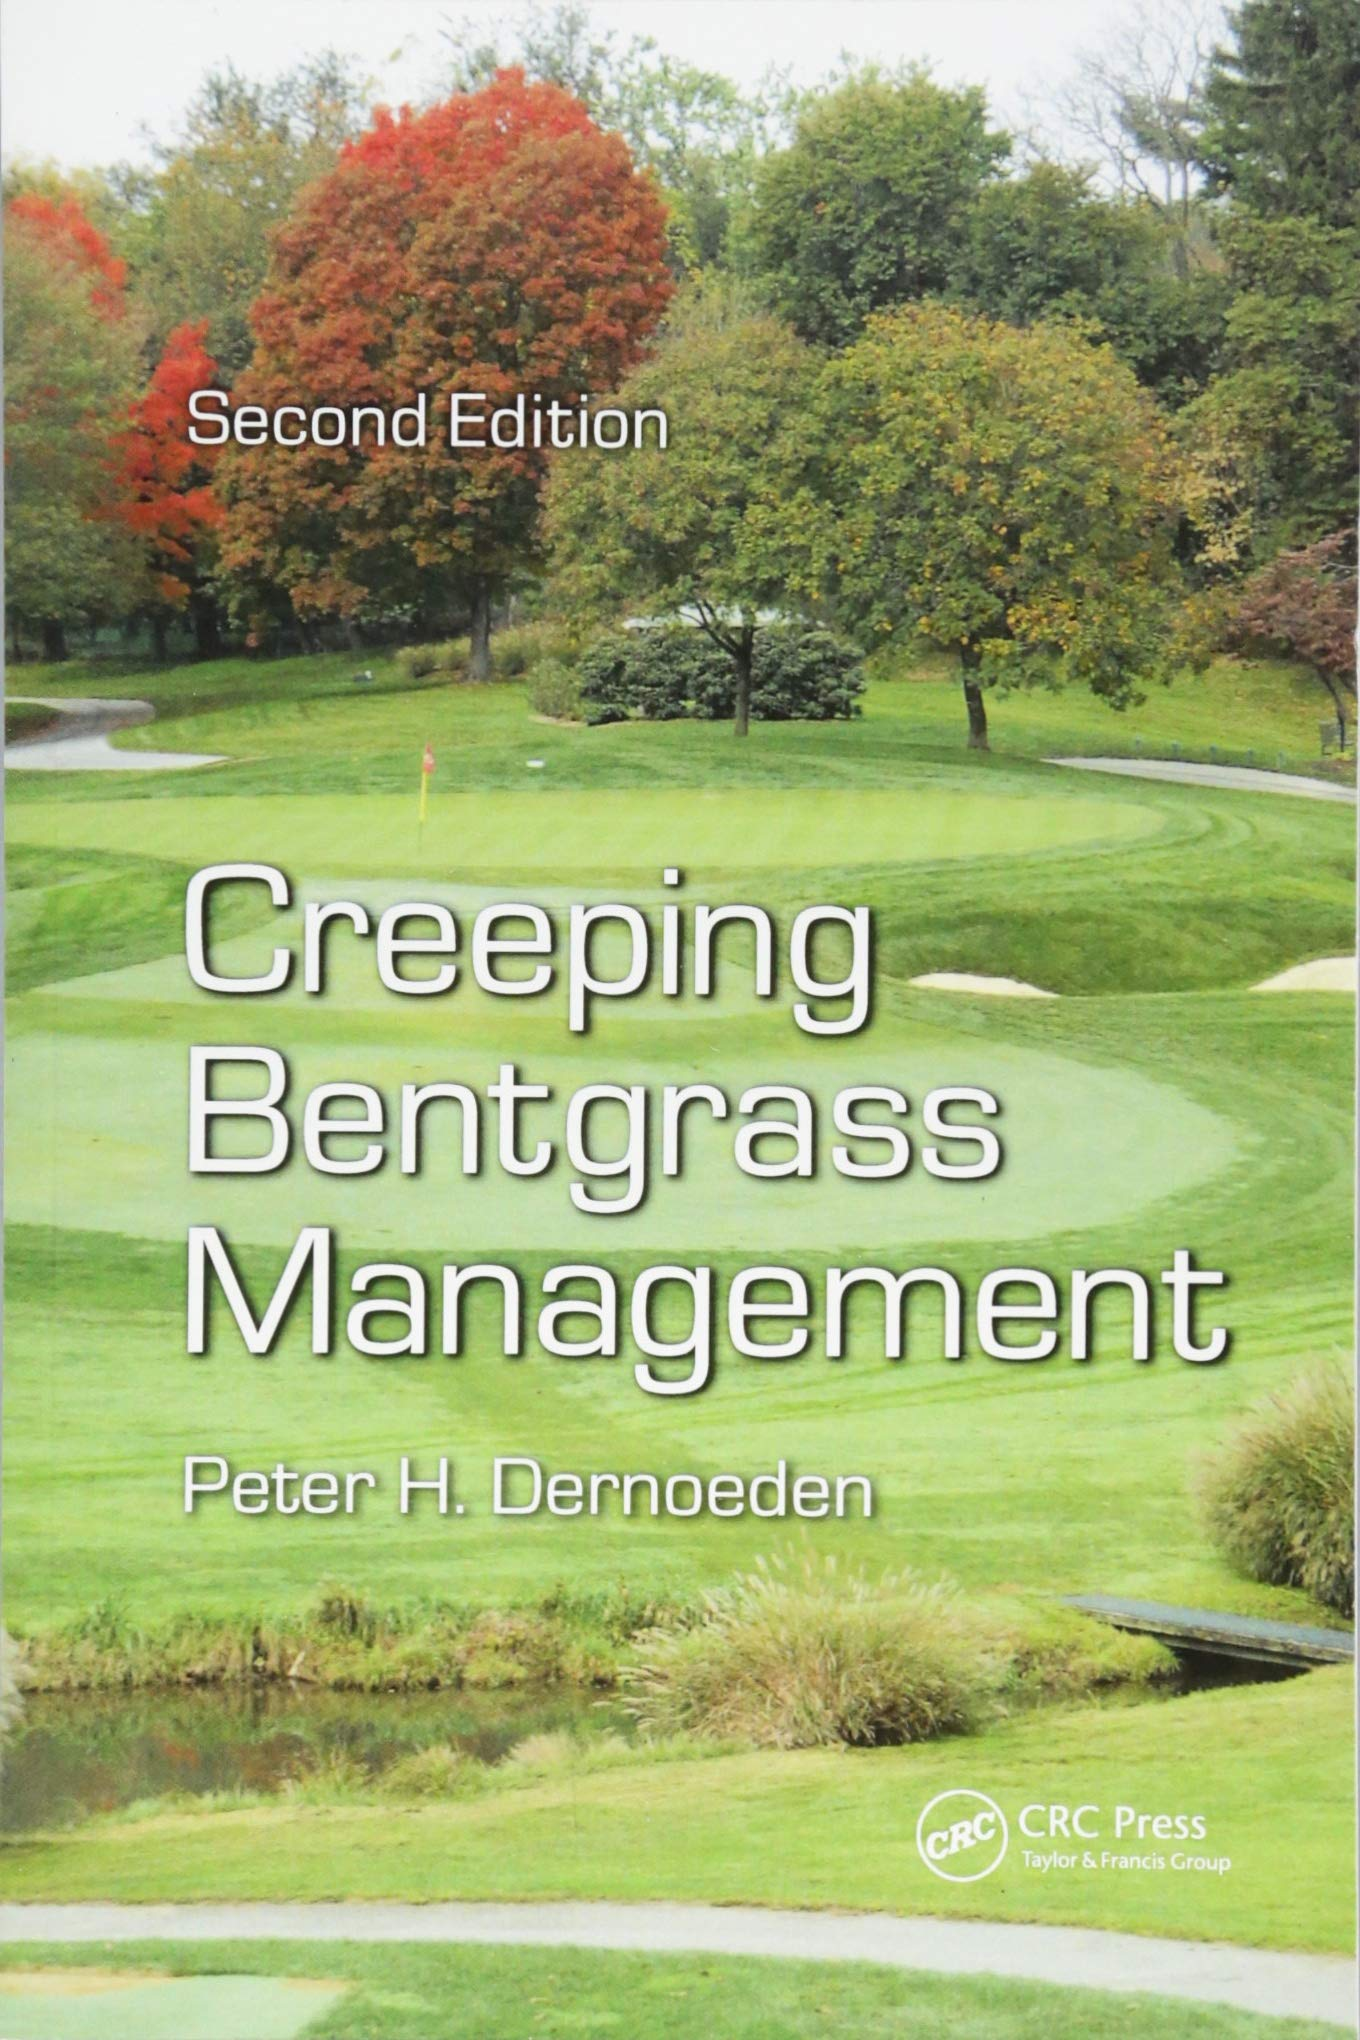 Creeping Bentgrass Management by CRC Press